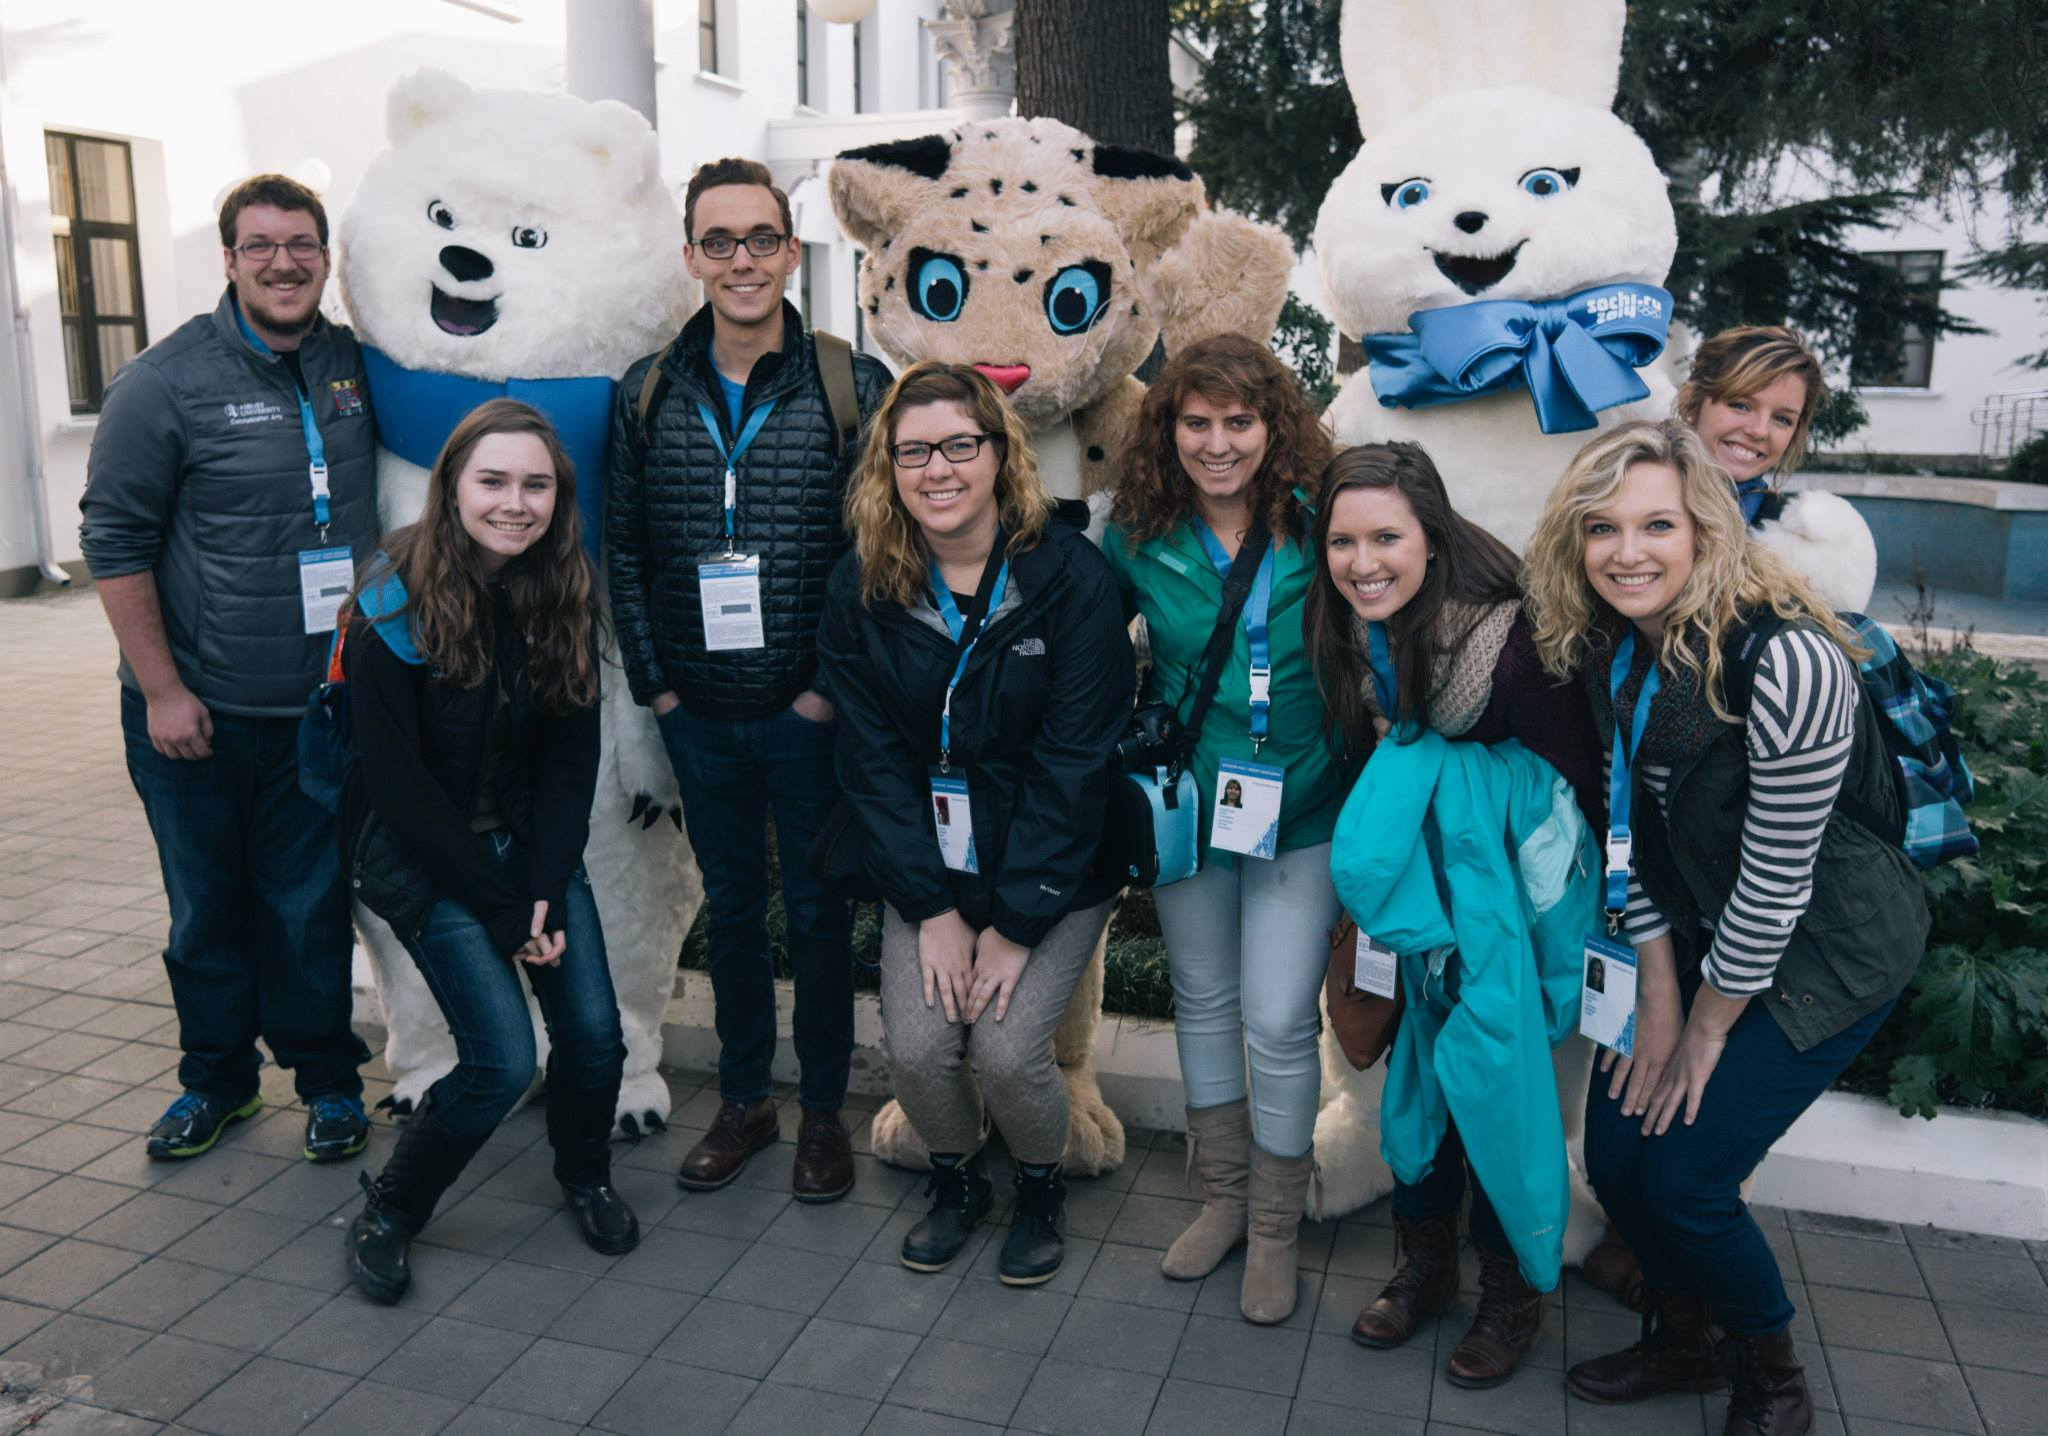 The team on our first day, posing with the official Sochi 2014 mascots.